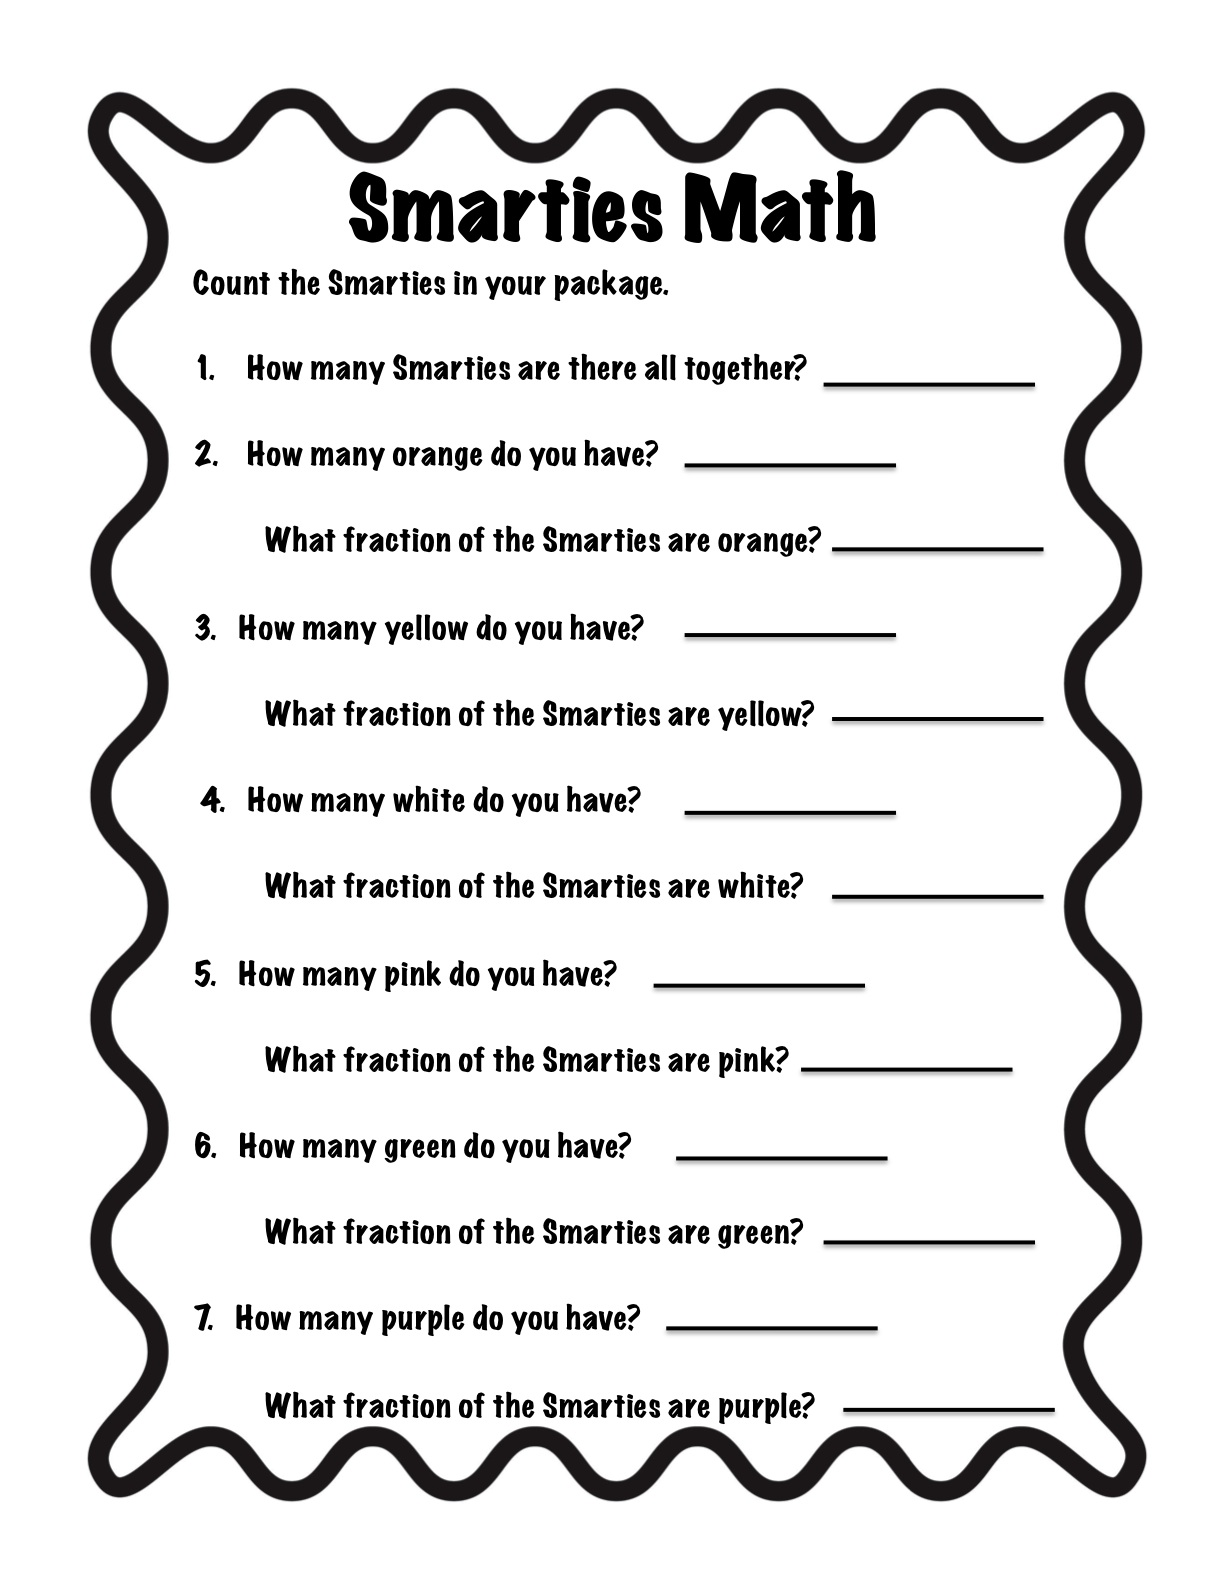 Enjoy this freebie on learning fractions using Smarties!